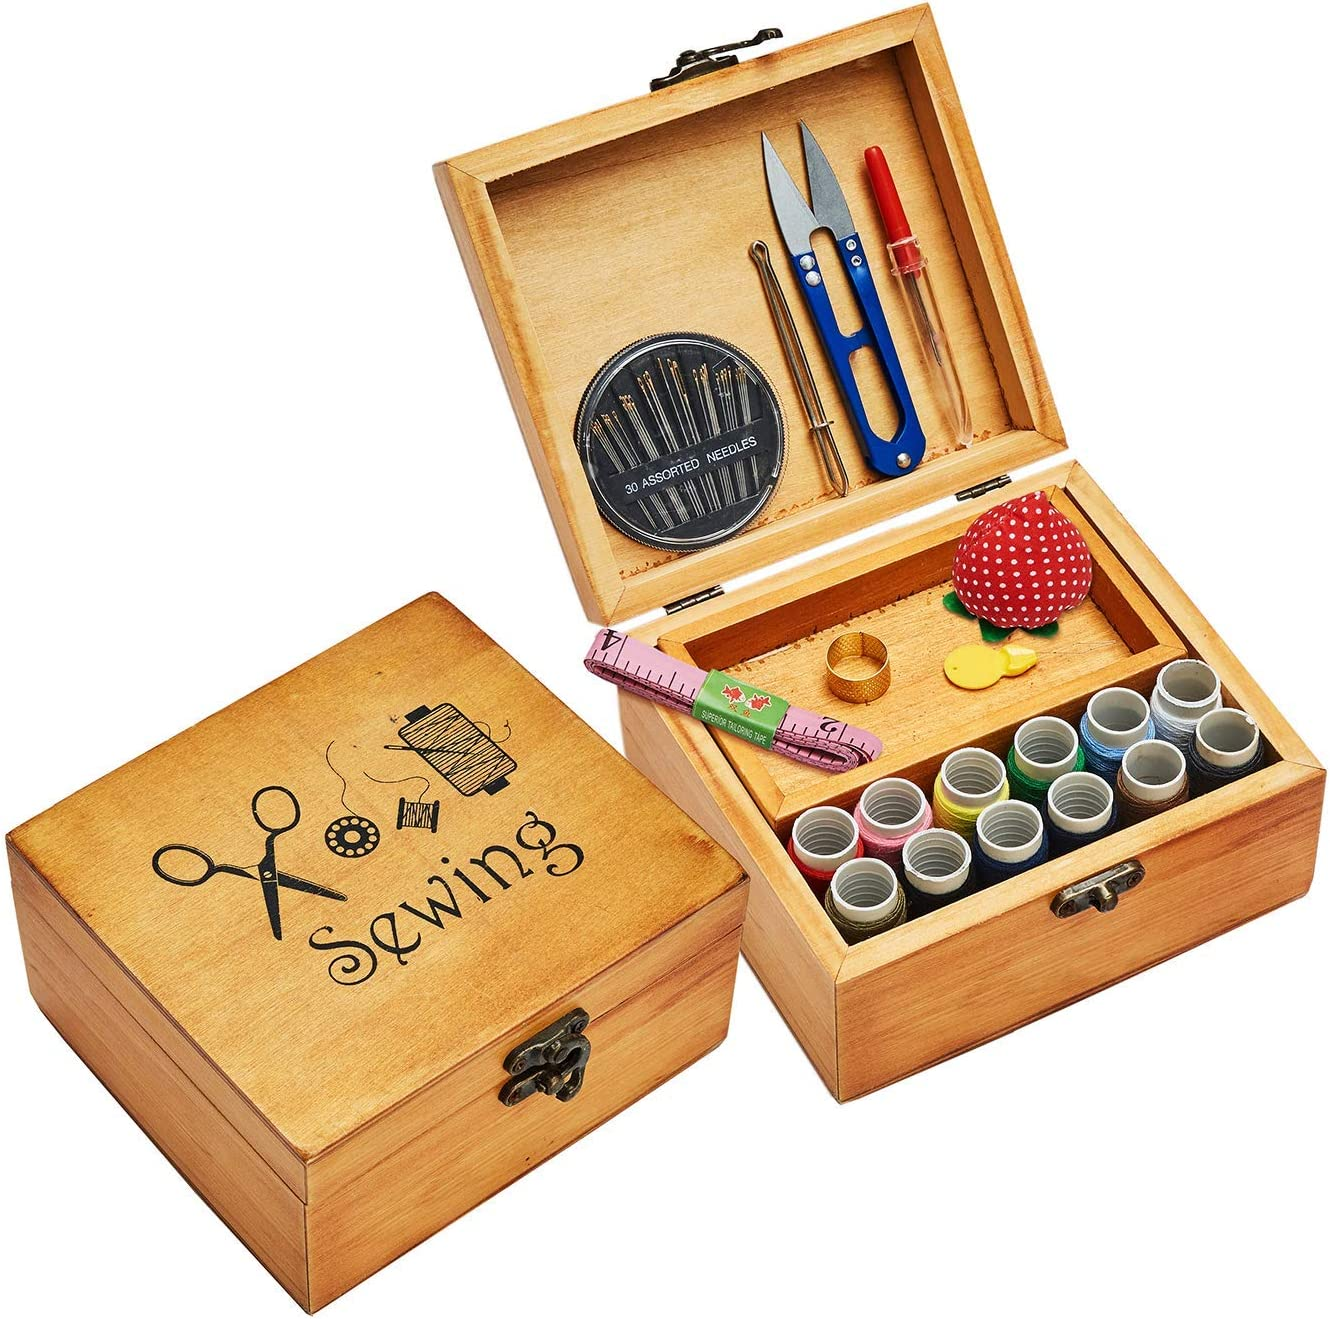 Sewing Kit, Wooden Sewing Basket with Accessories, Sewing Box with Sewing Kit Accessories for Home Repair Tool Set for Beginners/Women/Men/Girls/Kids